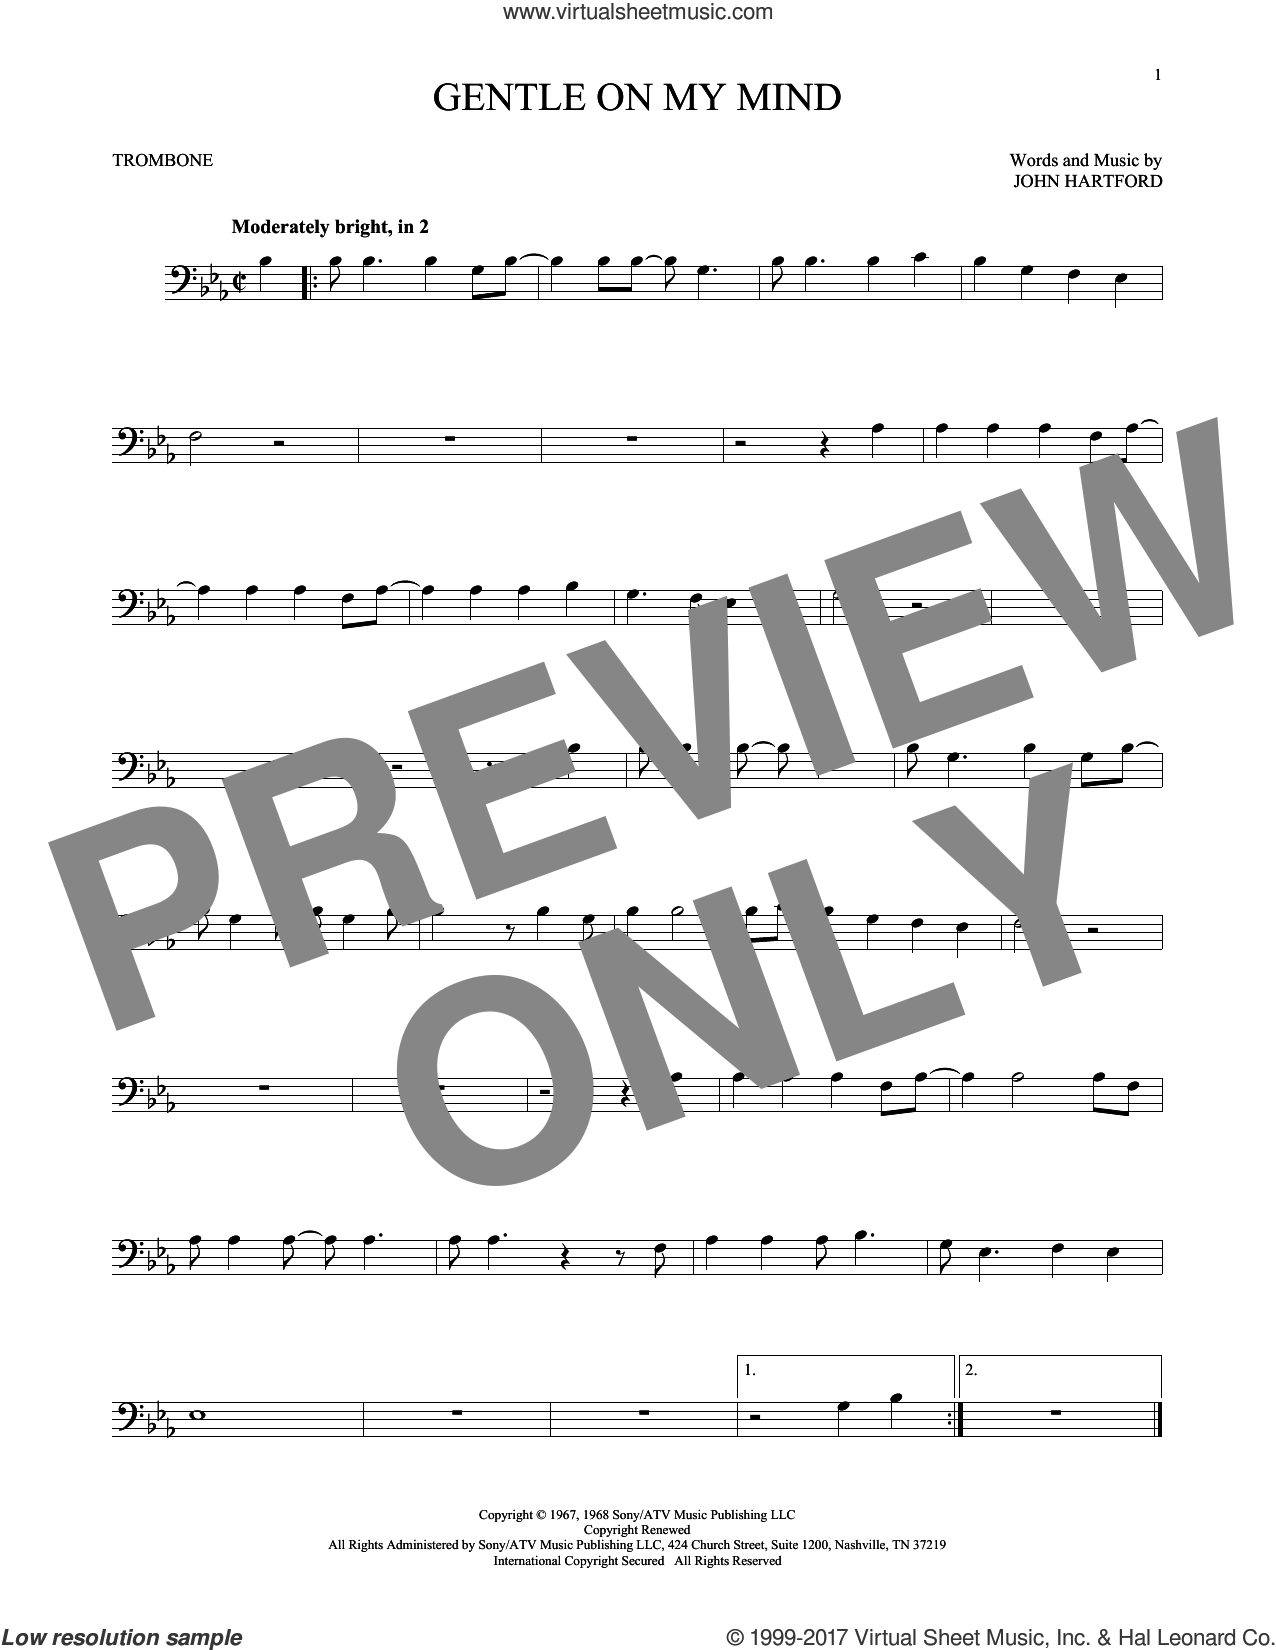 Gentle On My Mind sheet music for trombone solo by Glen Campbell and John Hartford, intermediate skill level